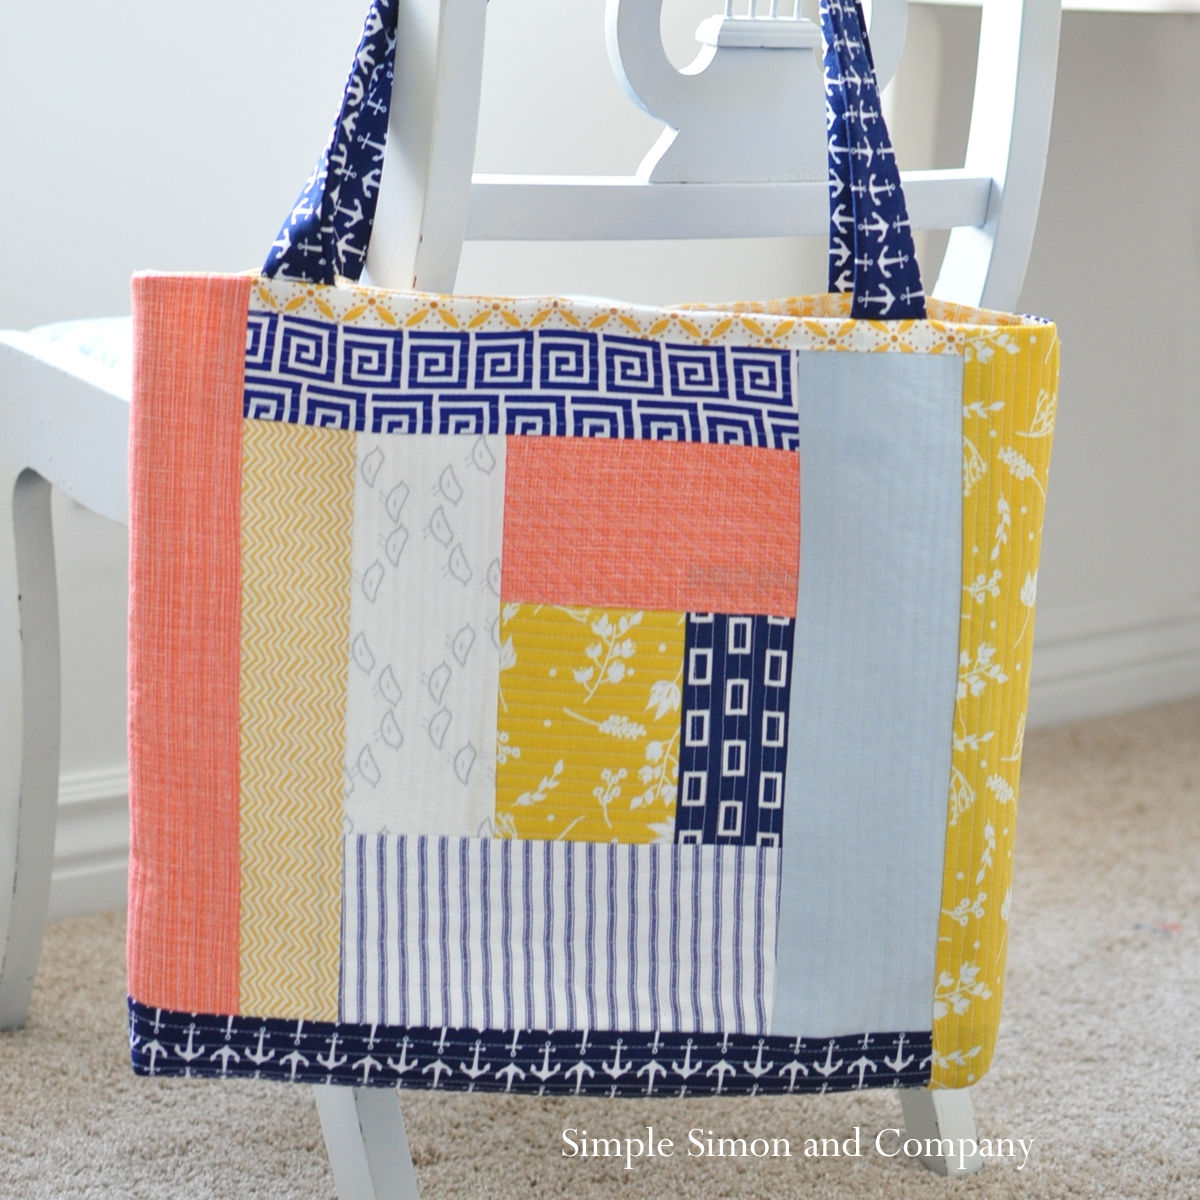 Quilt-as-you-go Tote Bag - Simple Simon and Company : quilt as you go tote - Adamdwight.com